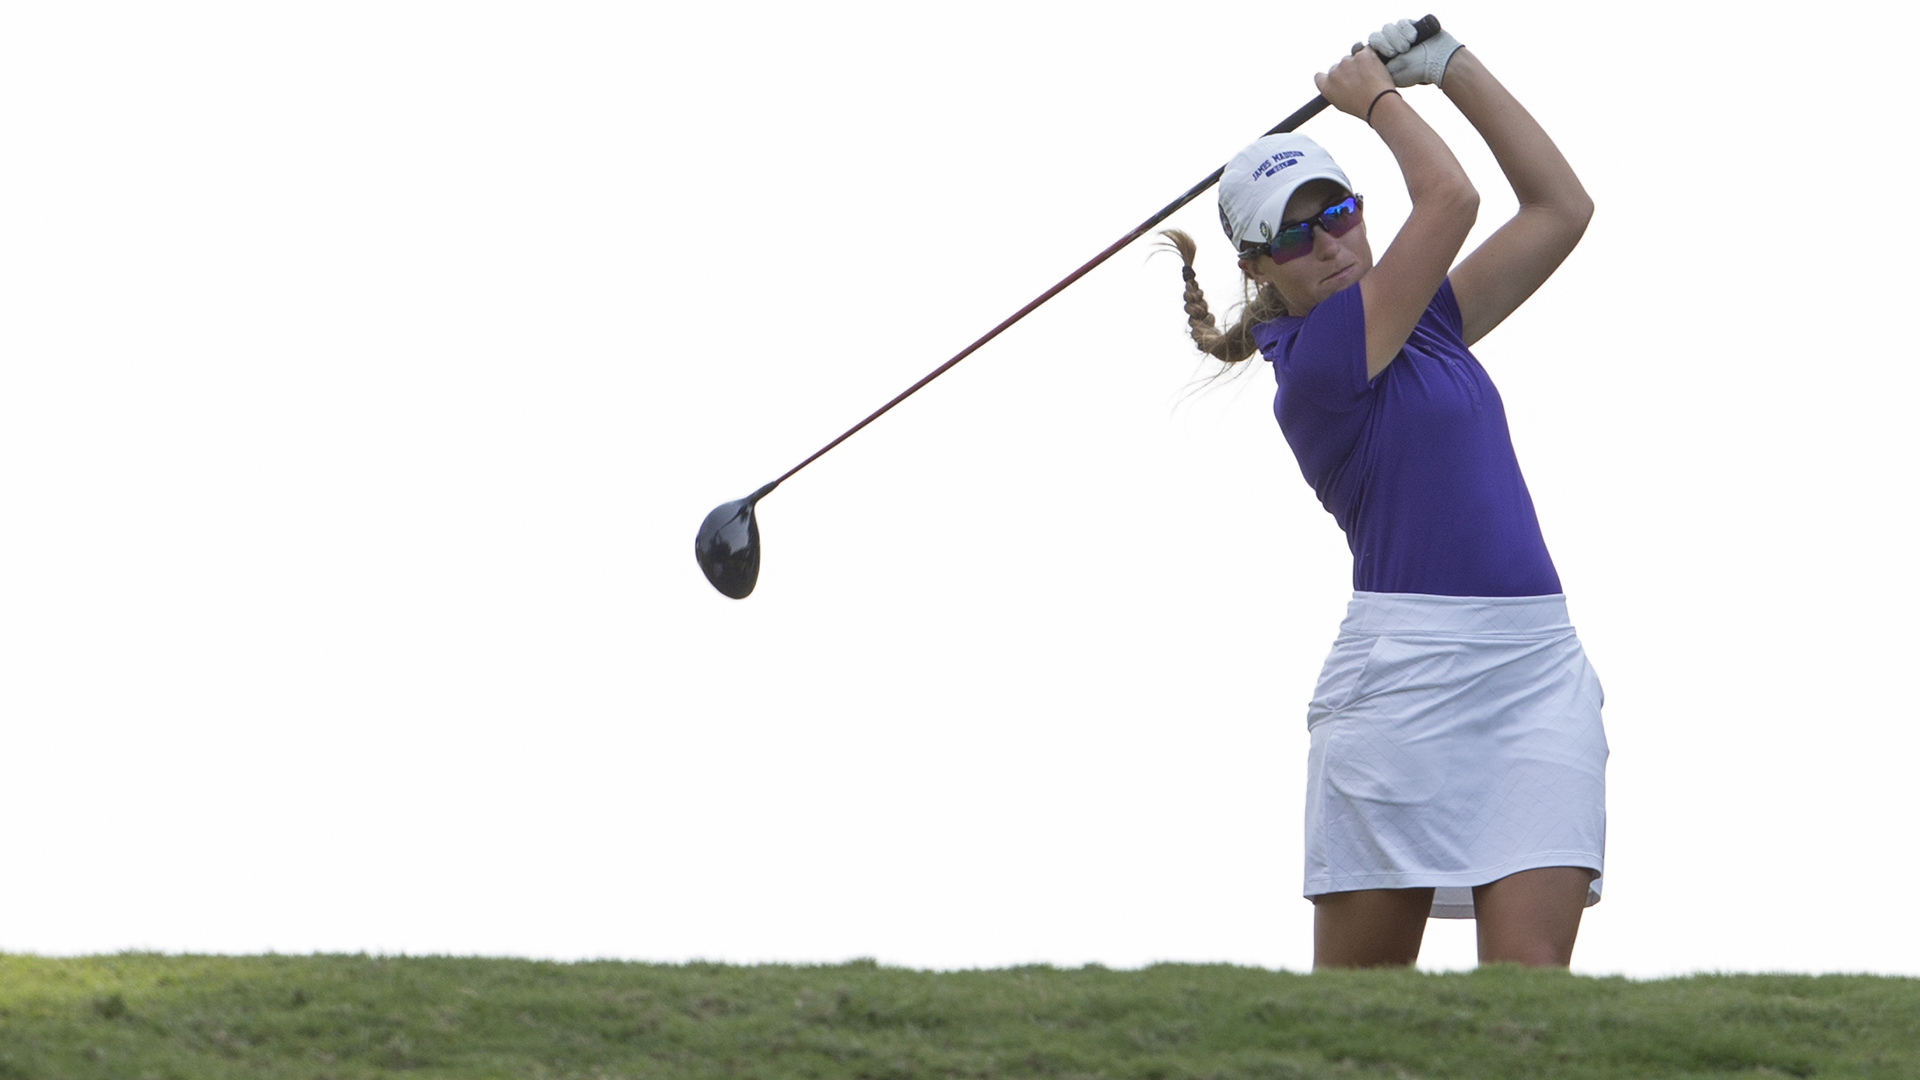 Women's Golf: Weiss, Dukes Close Out Play at Lady Paladin Invite)